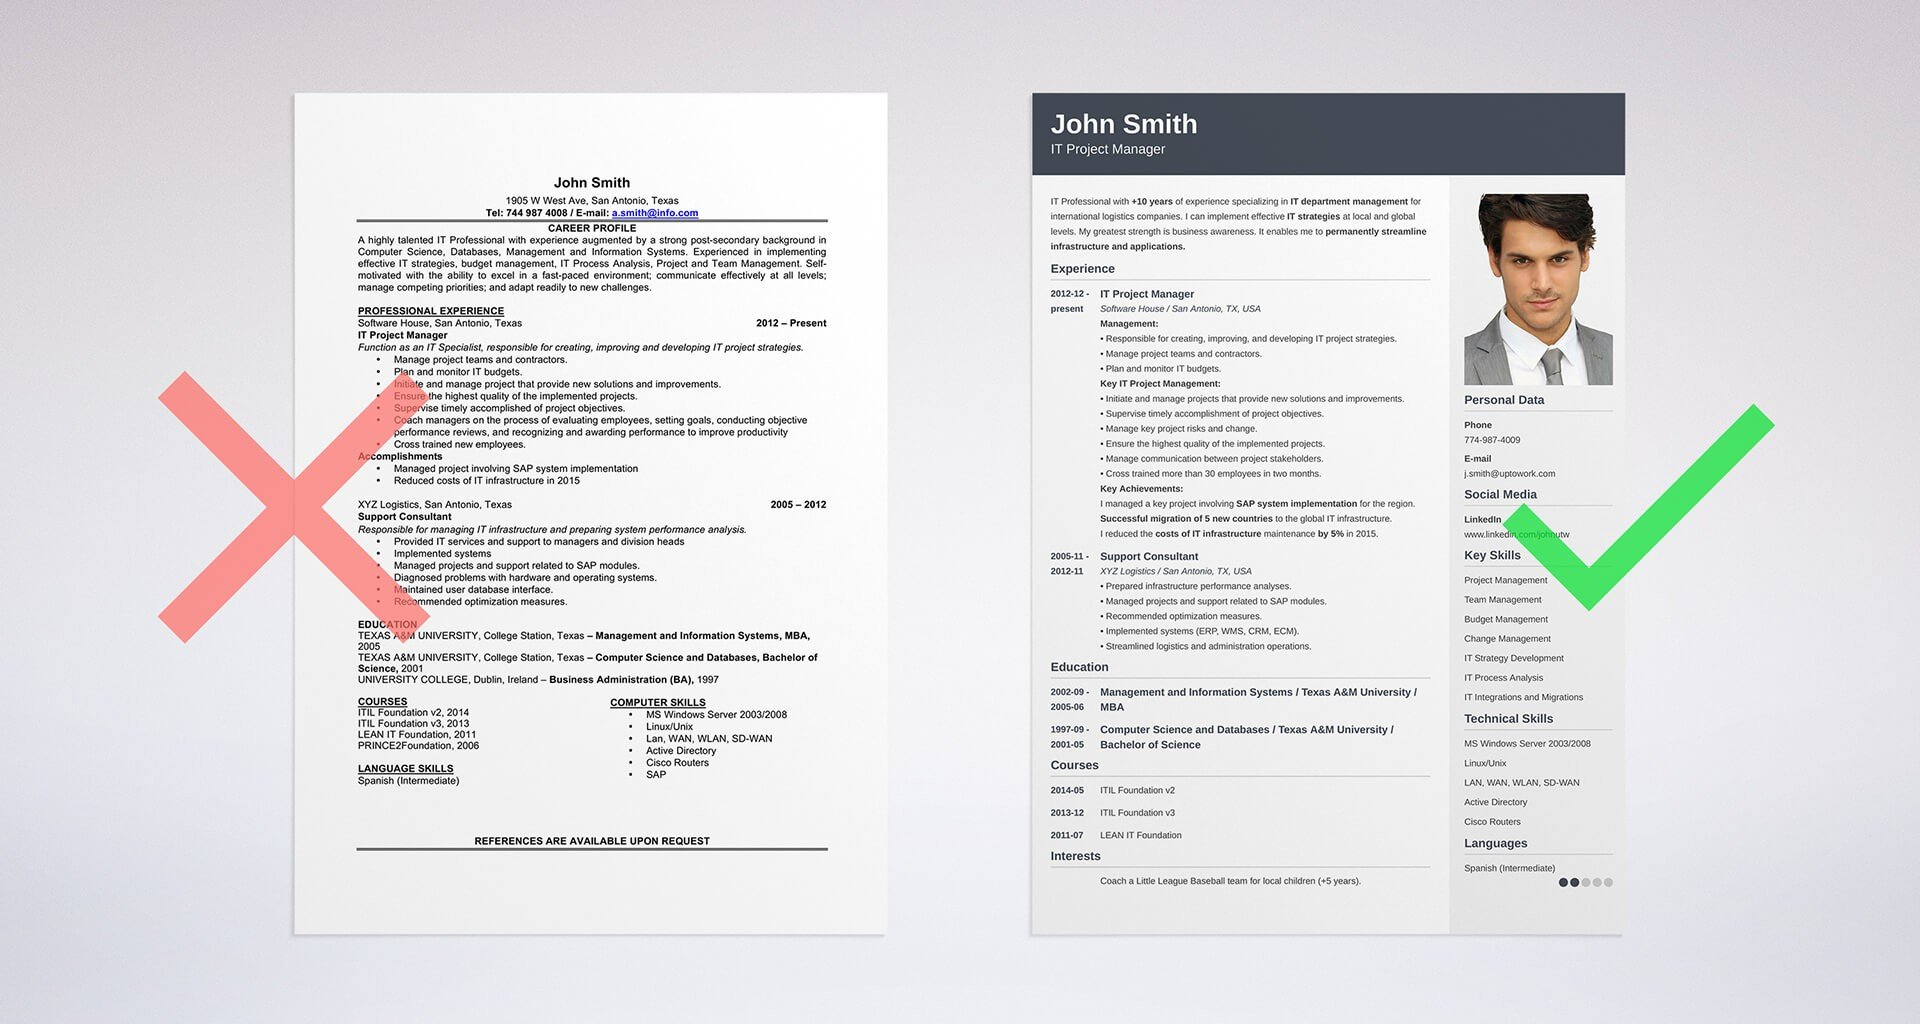 of hobbies and interests for resume cv examples good eye catching templates free patient Resume Good Hobbies For Resume